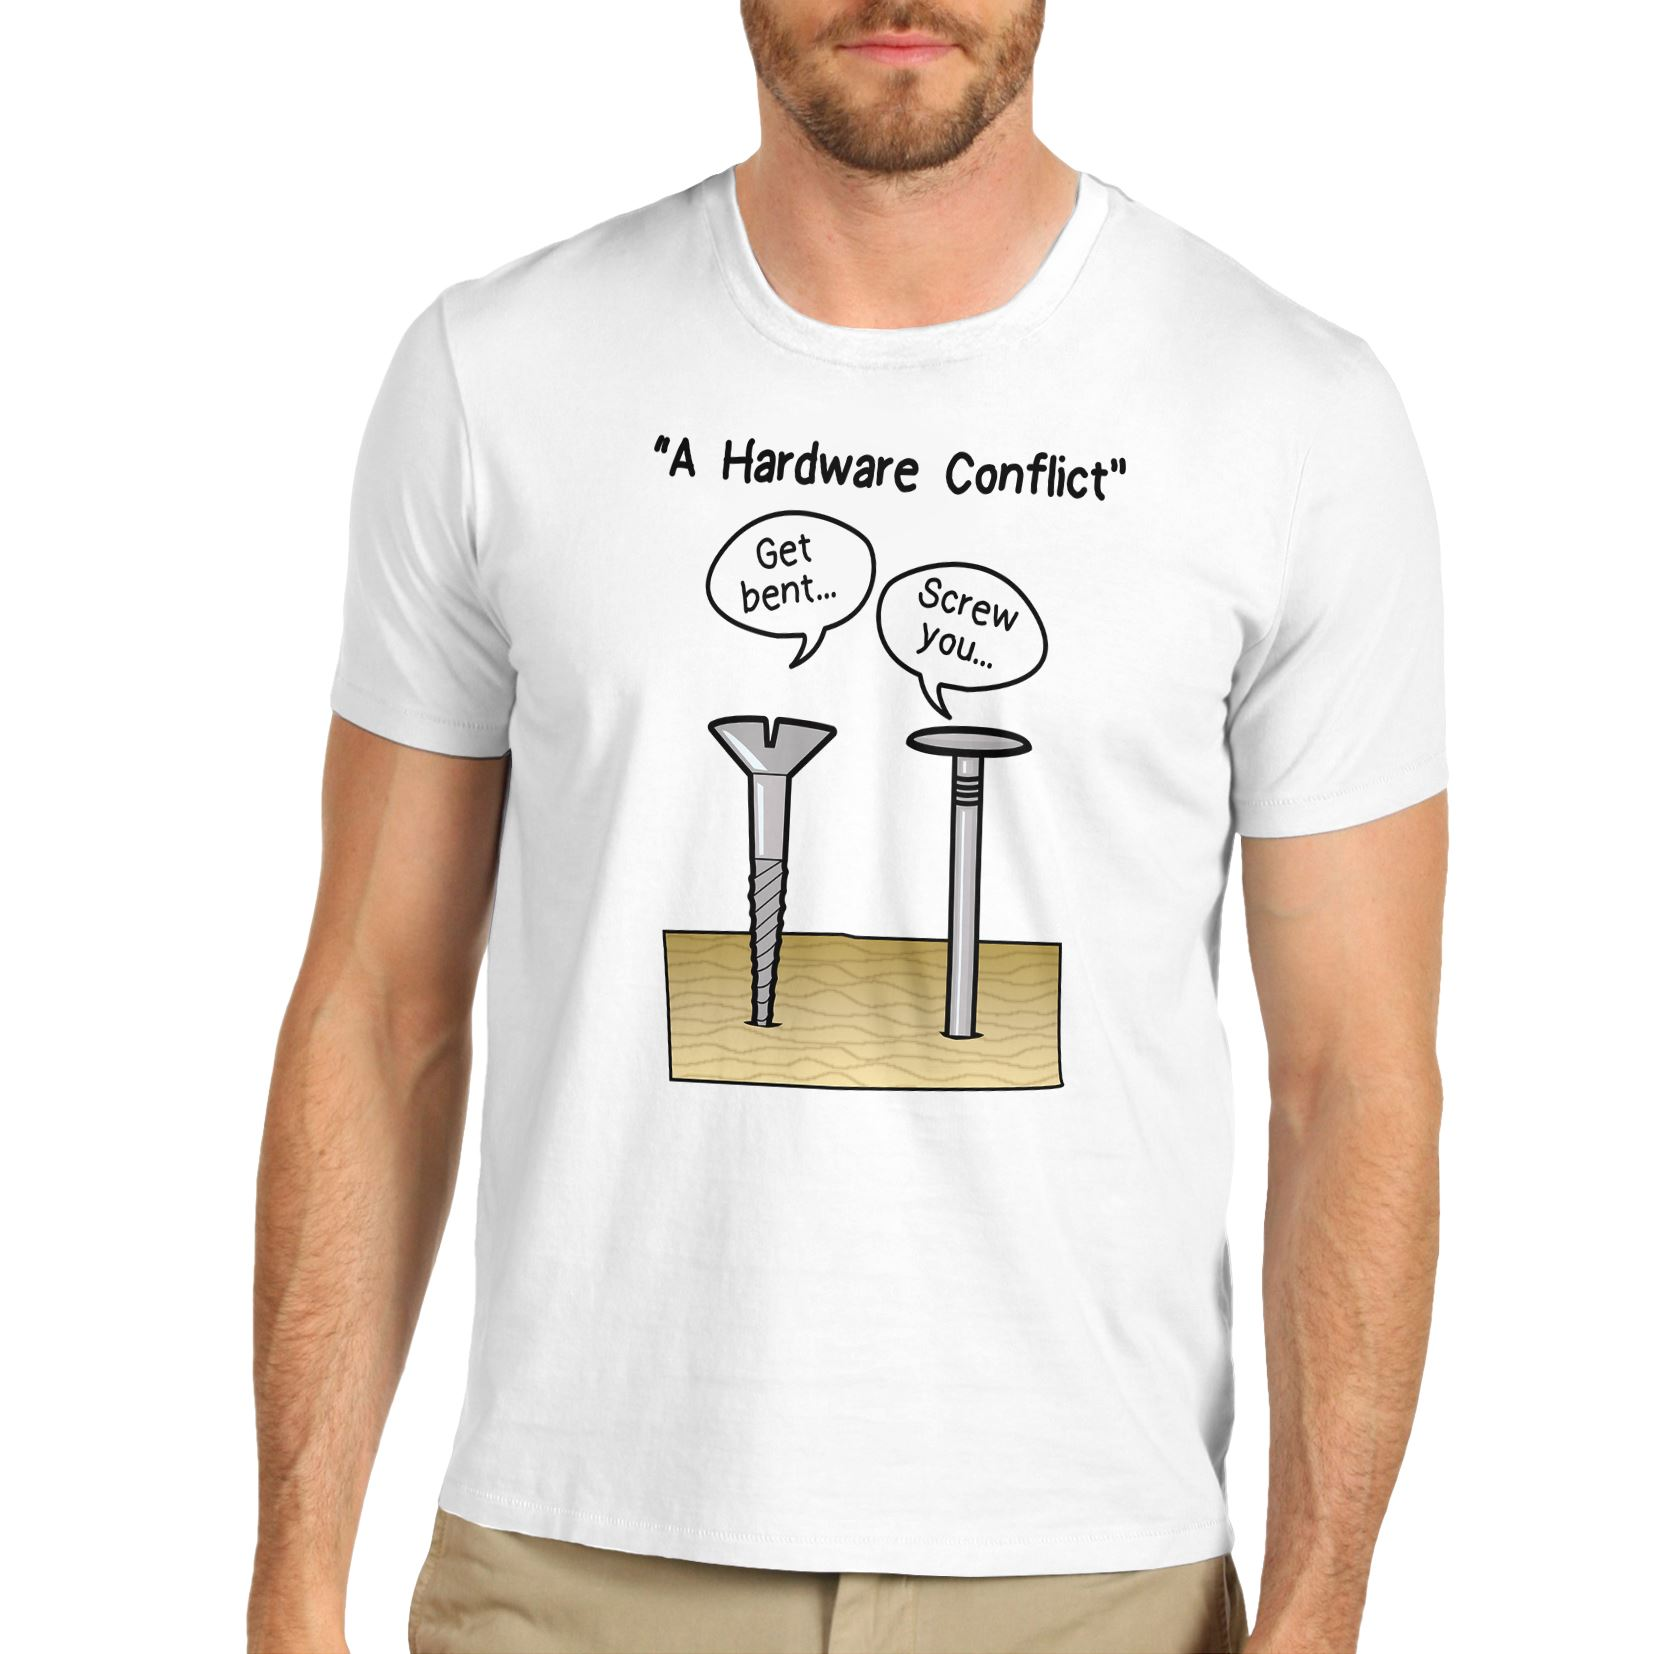 Twisted envy men 39 s a hardware conflict funny t shirt ebay for Silly shirts for men